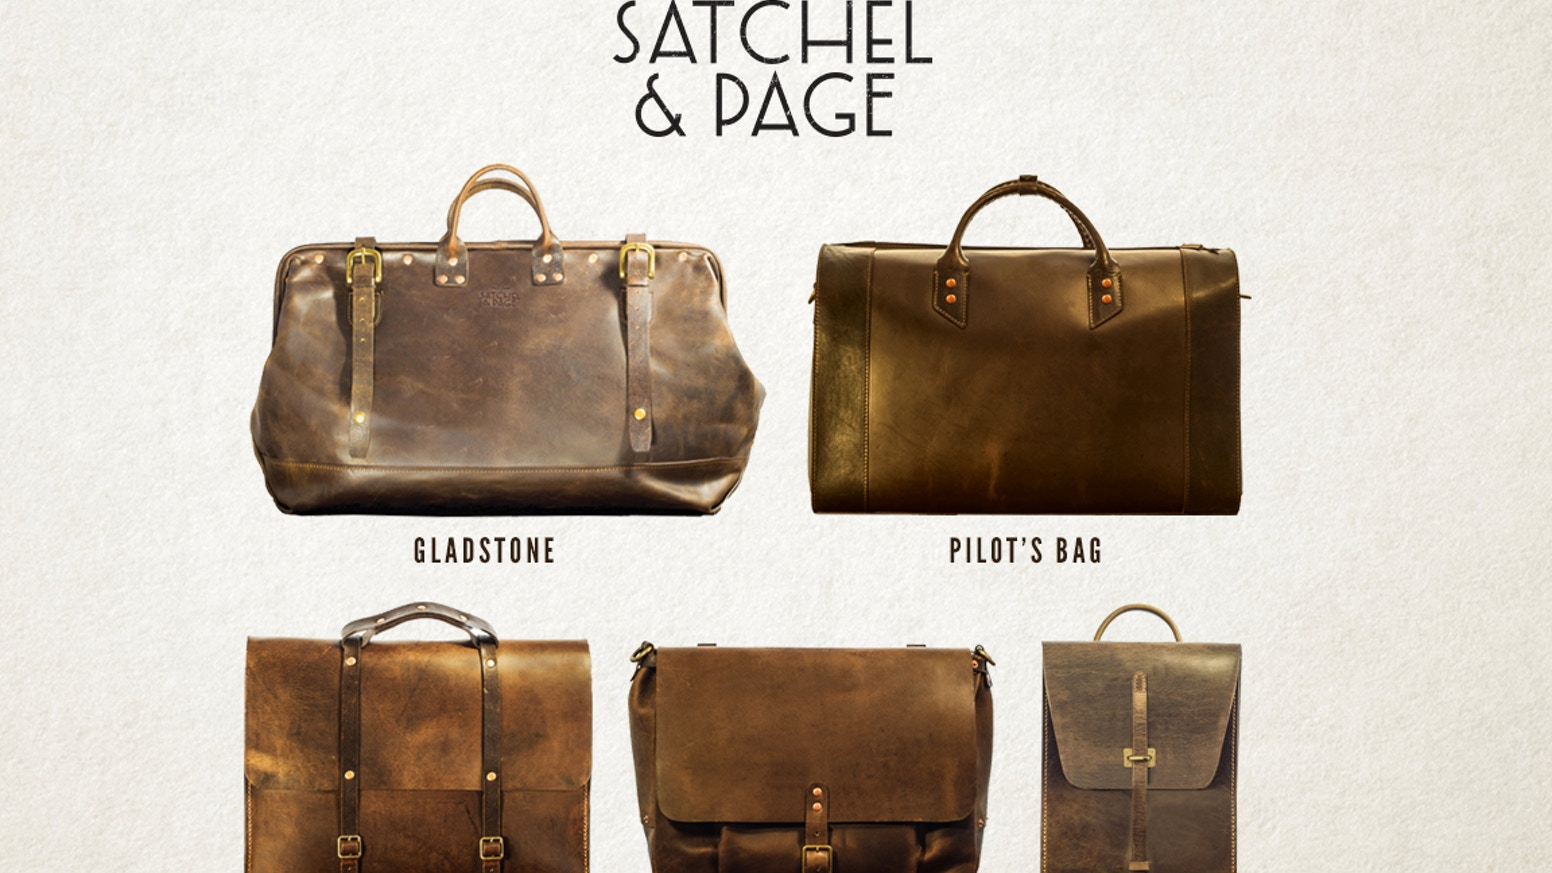 Heirloom quality, 1940s styled leather bags. Inspired by my Grandfather's Map Case from WWII. Guaranteed for life.